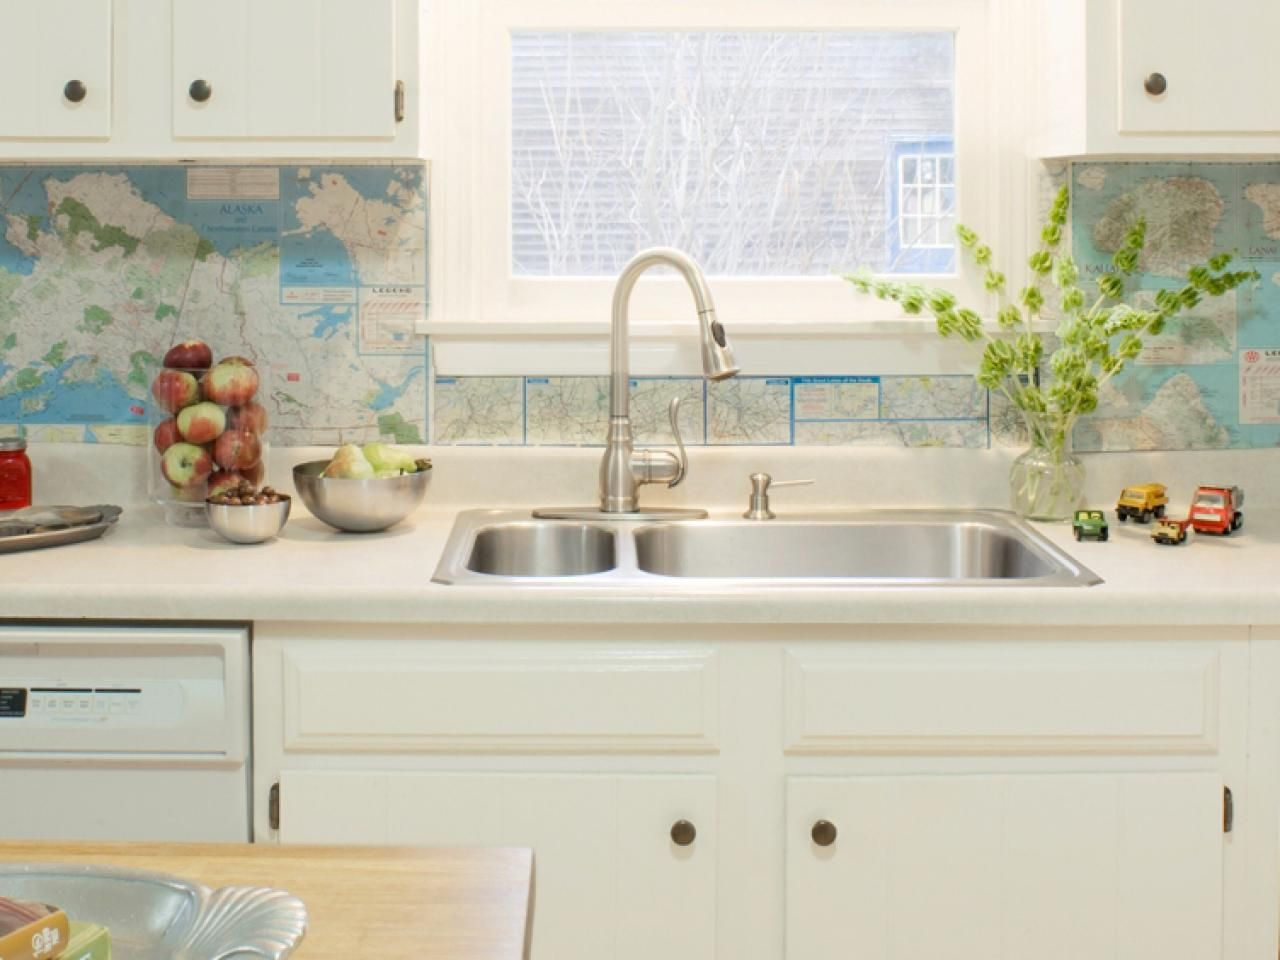 diy-kitchen-backsplash-9